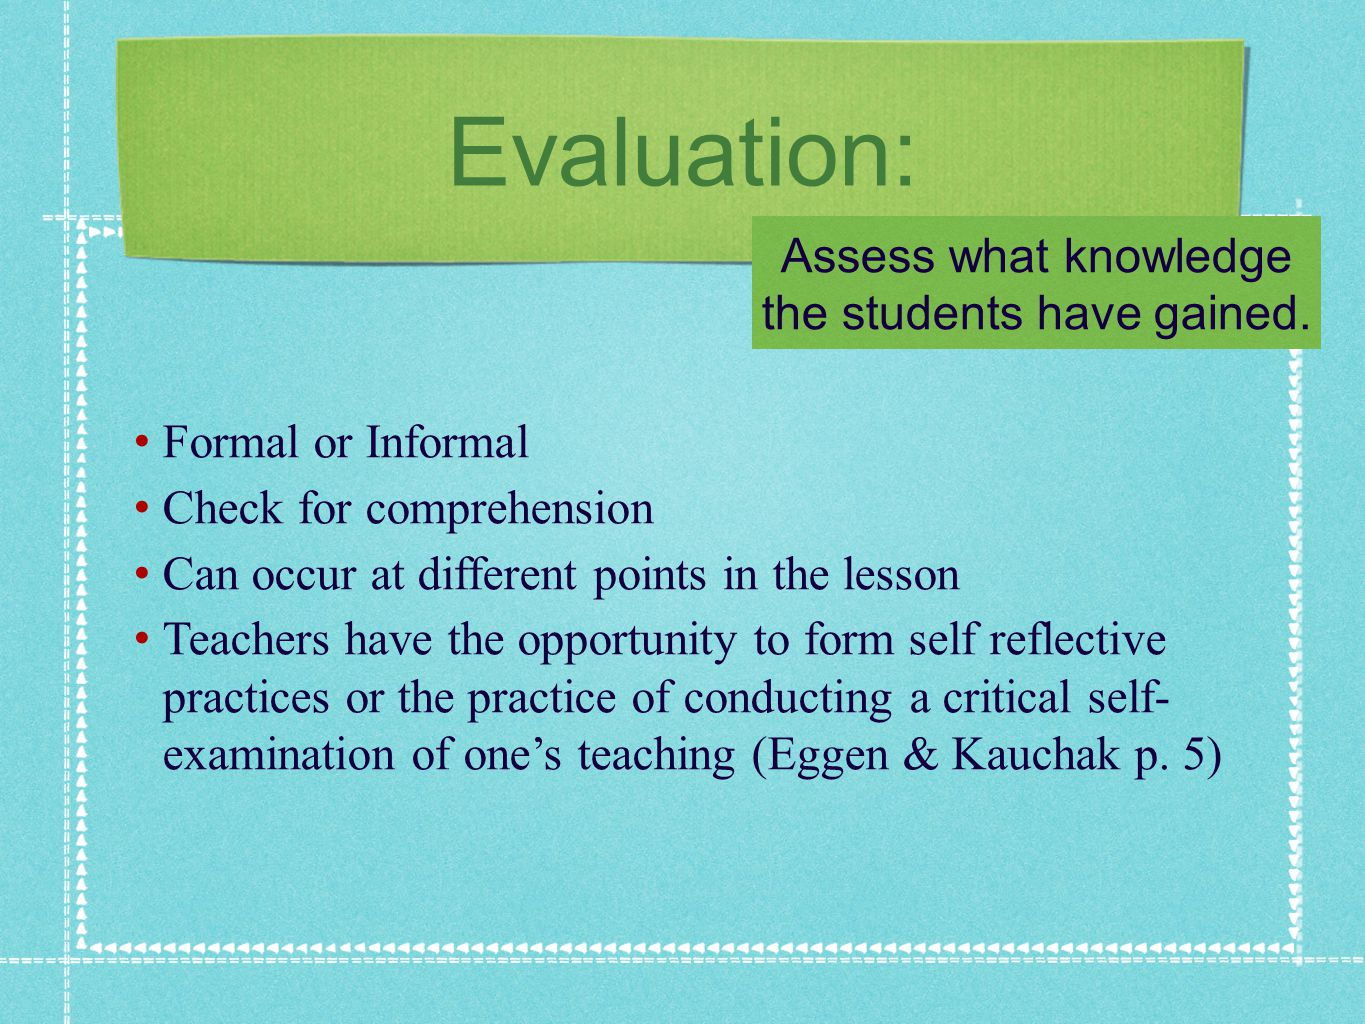 Evaluation: Formal or Informal Check for comprehension Can occur at different points in the lesson Teachers have the opportunity to form self reflective practices or the practice of conducting a critical self- examination of ones teaching (Eggen & Kauchak p.